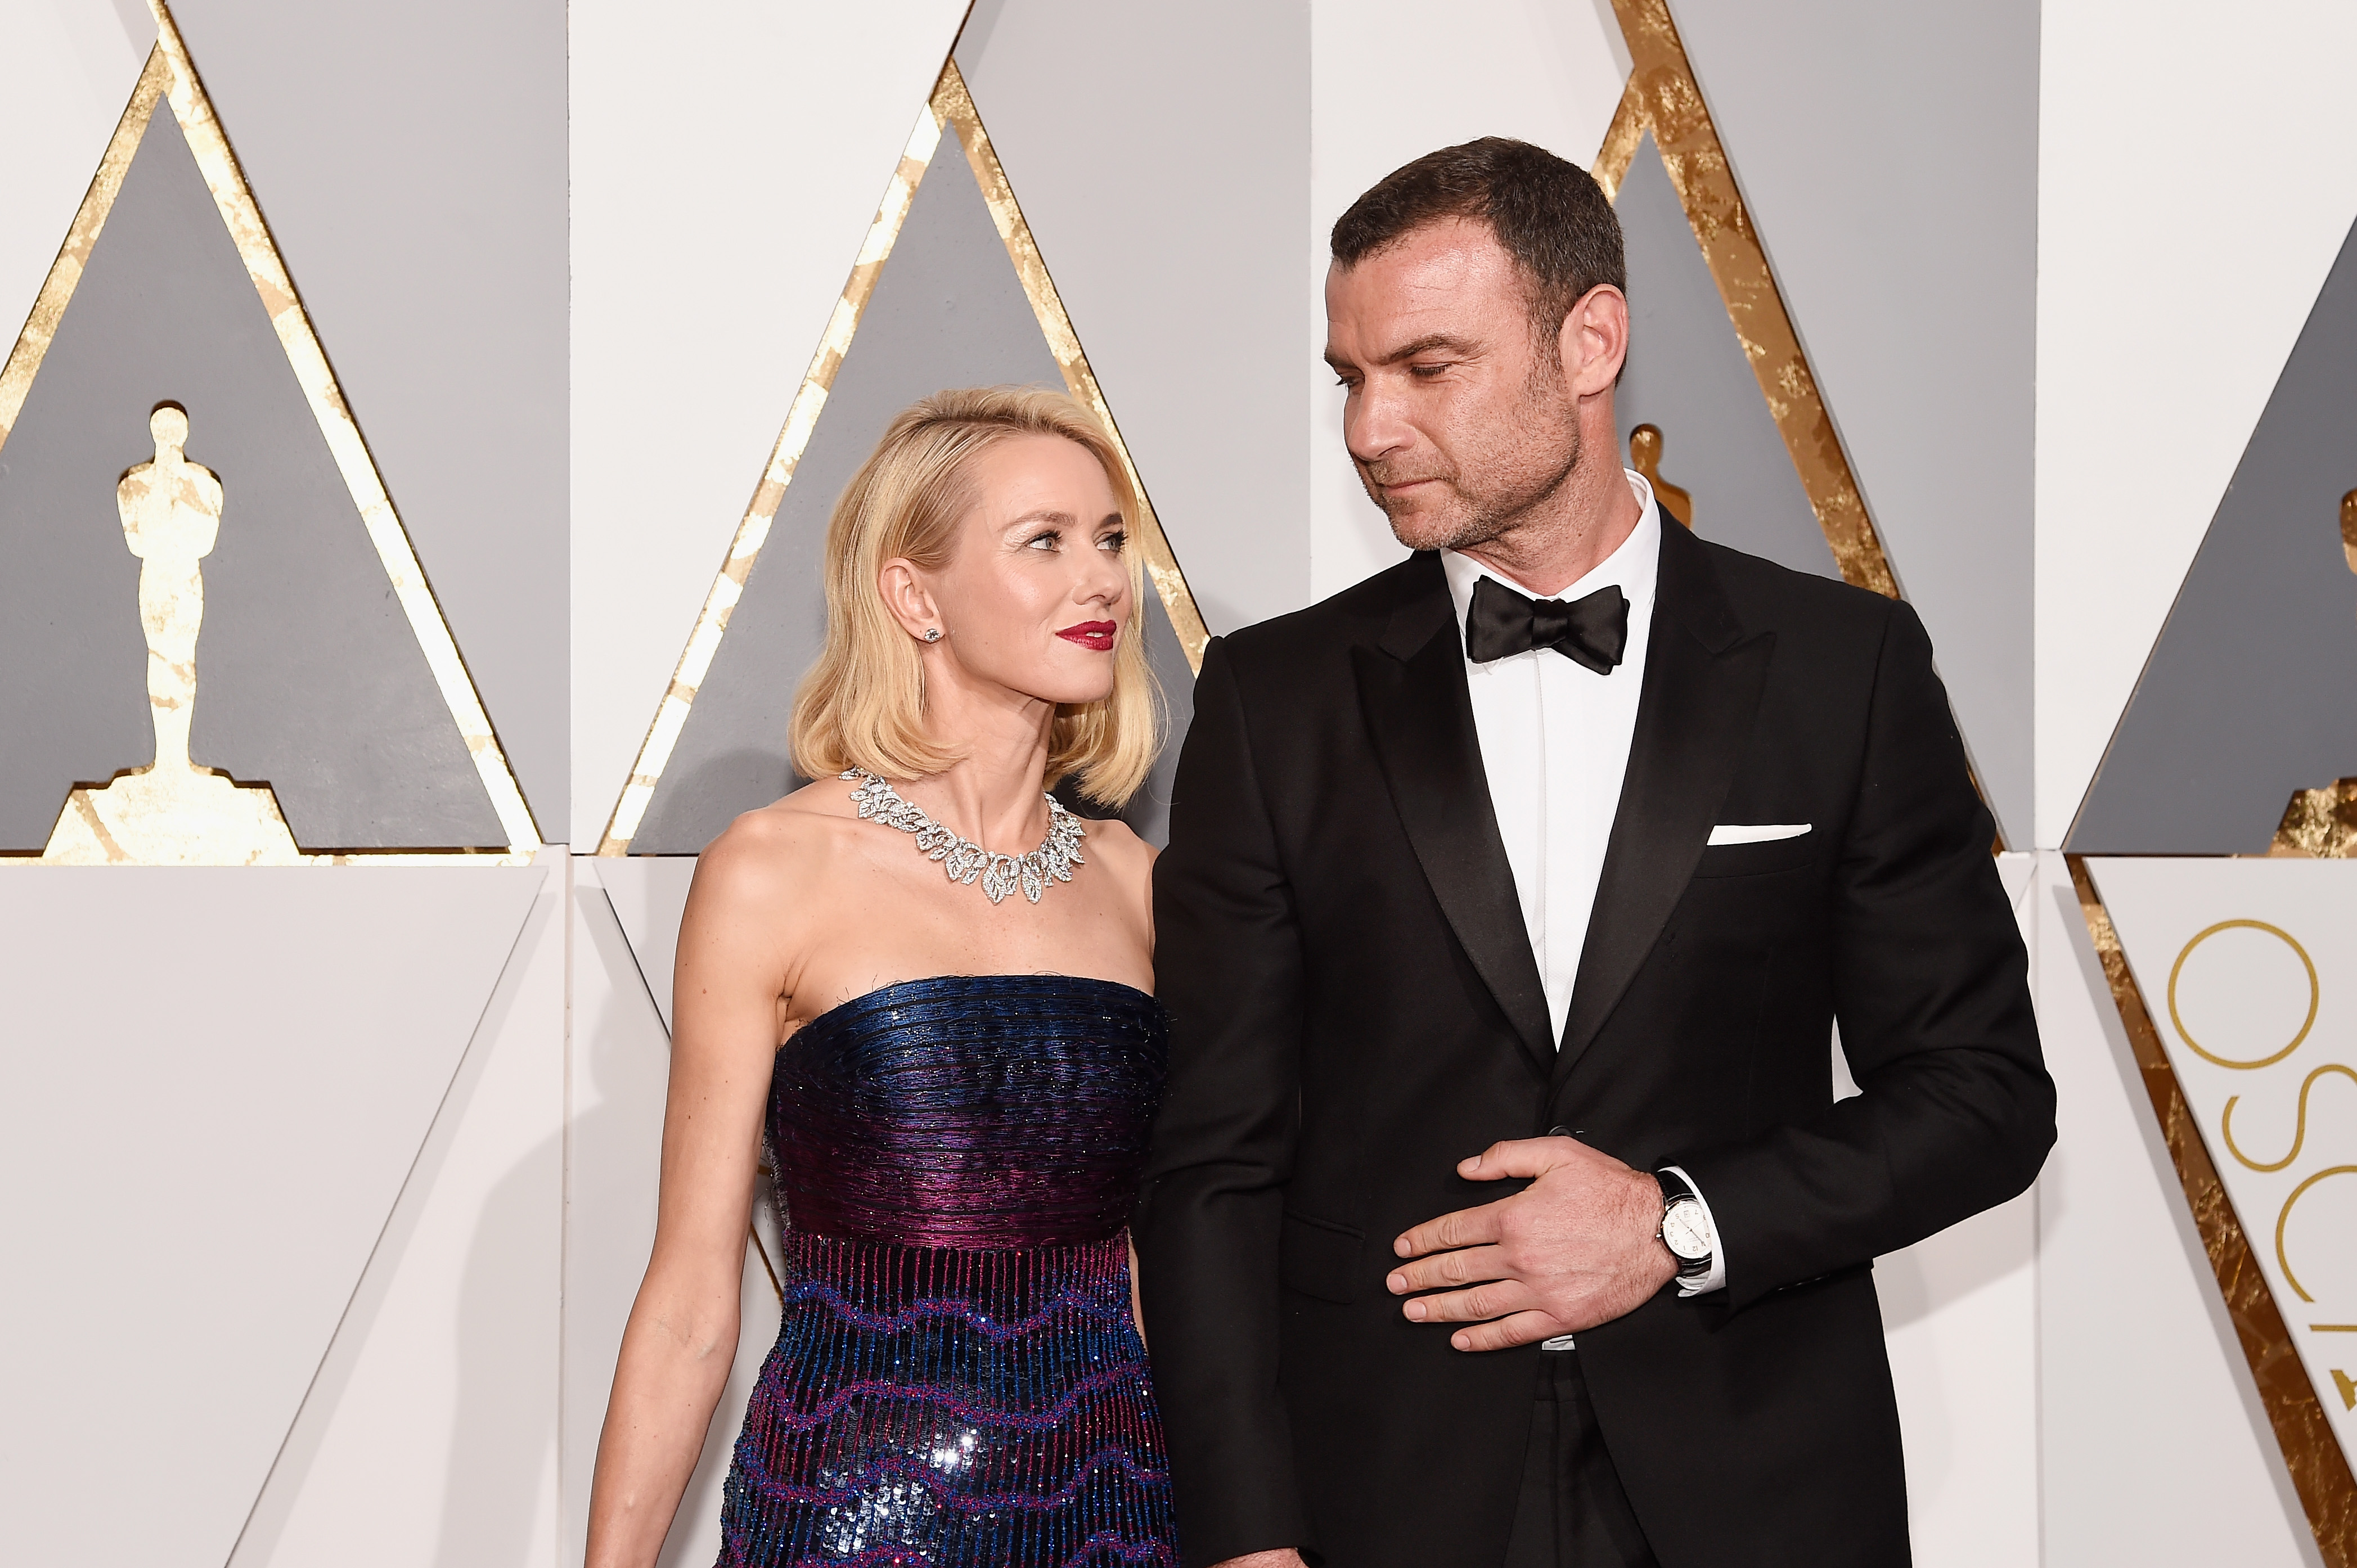 Naomi Watts and Liev Schreiber announce split after 11 years together